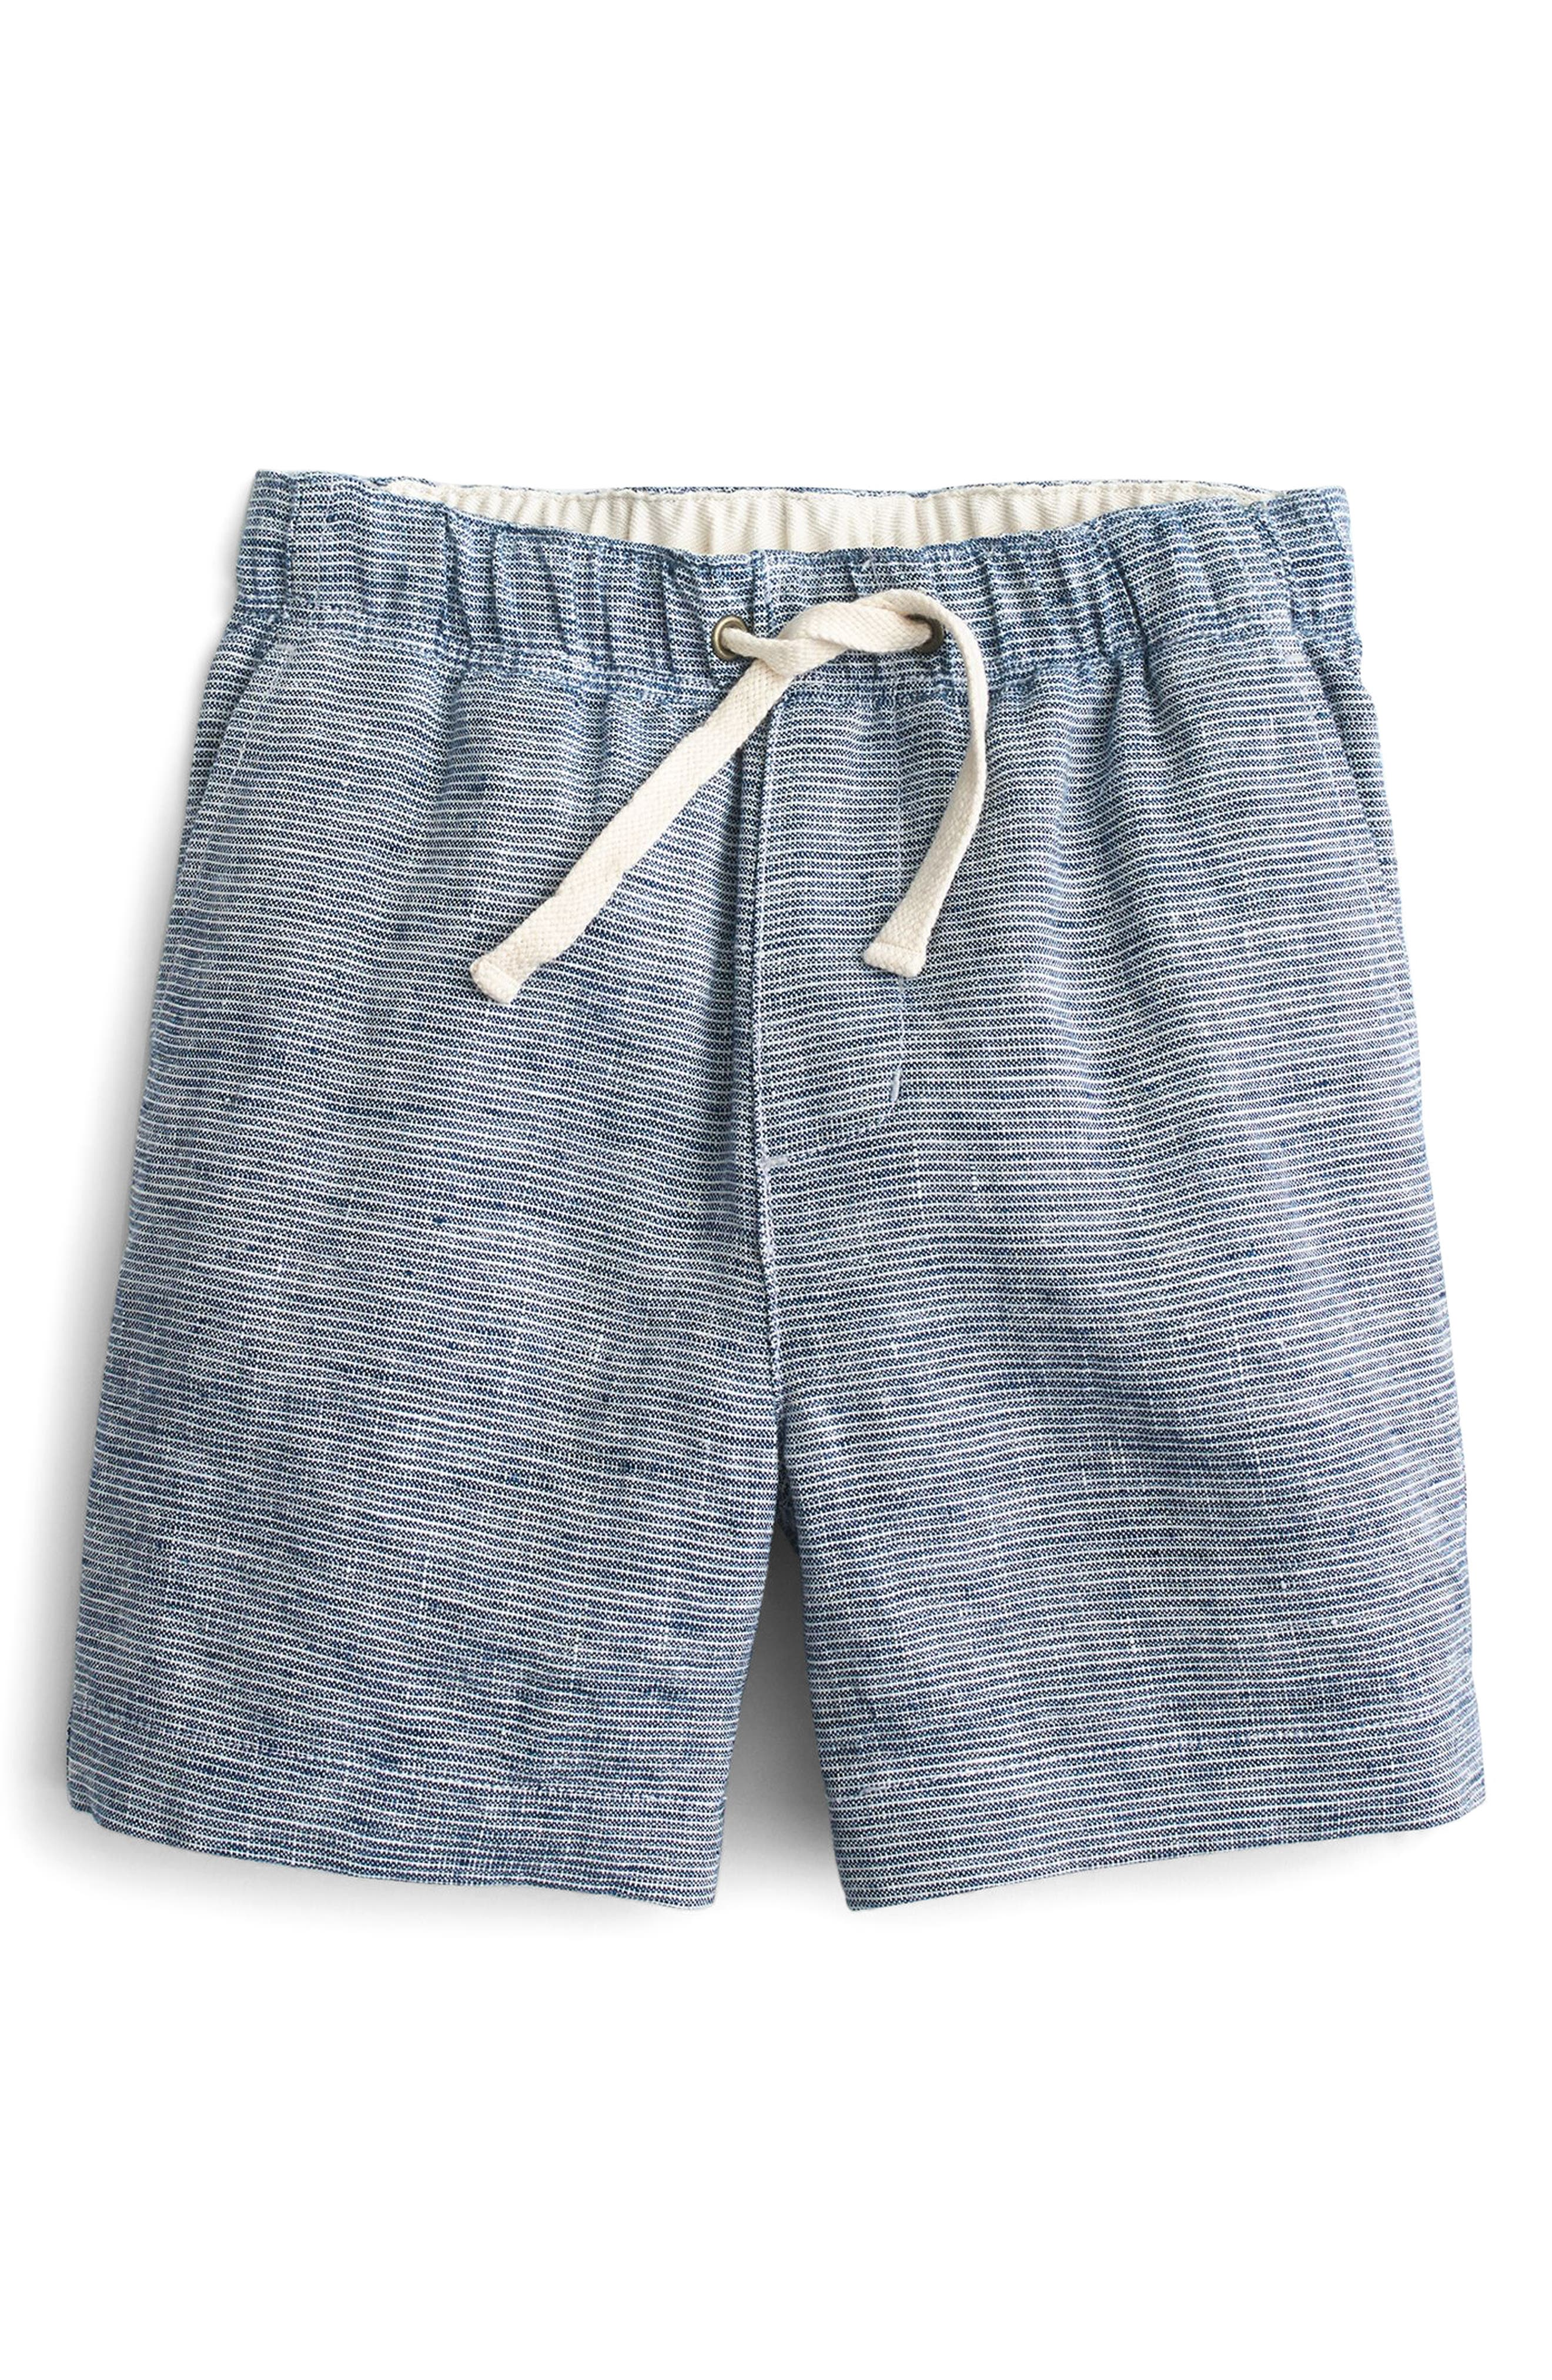 Boys Crewcuts By Jcrew Stripe Linen Dock Shorts Size 7  Blue